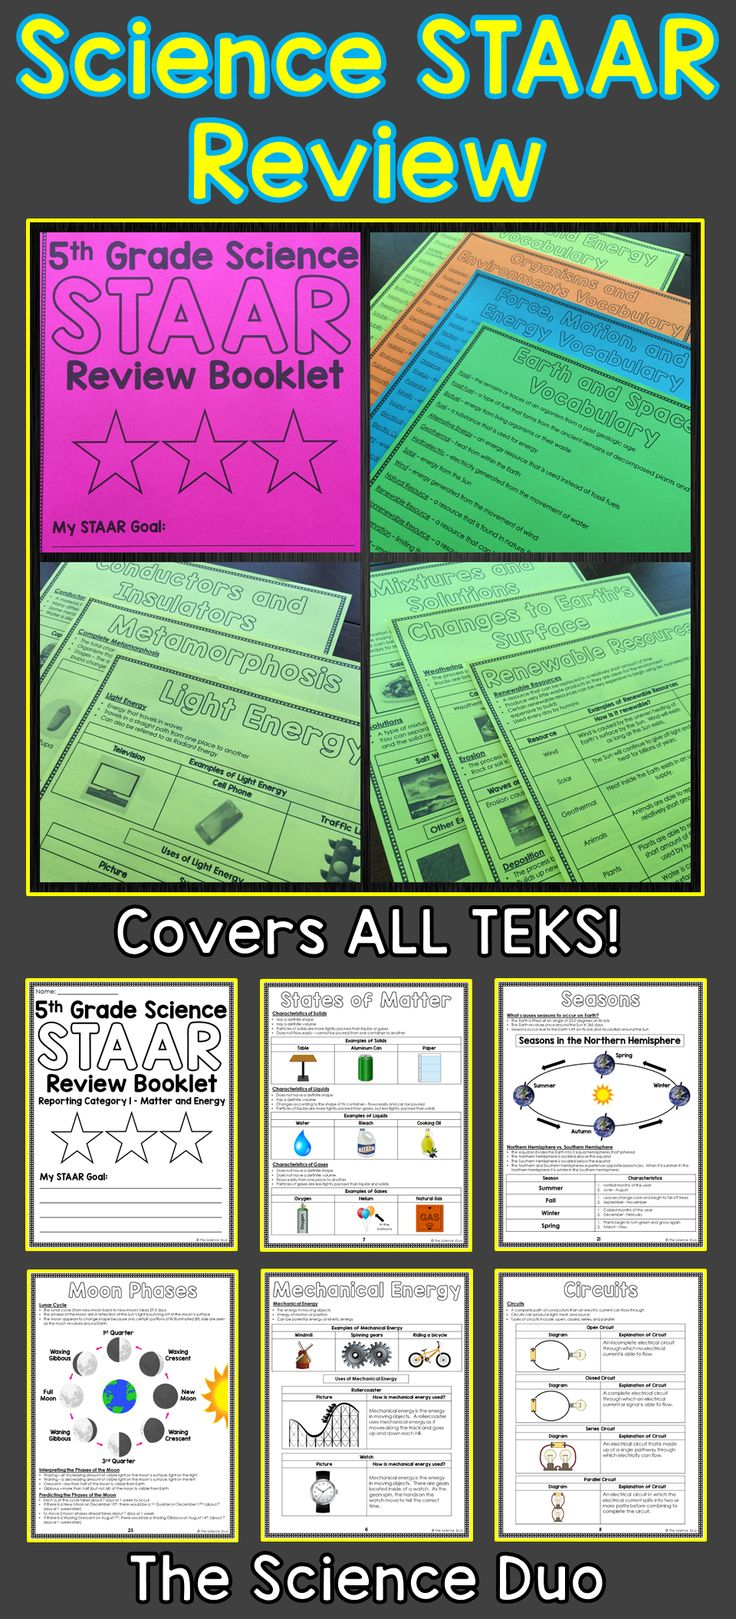 STAAR Science Review Booklet.  This resource includes all 4 Reporting Categories for the 5th Grade Science STAAR Test.